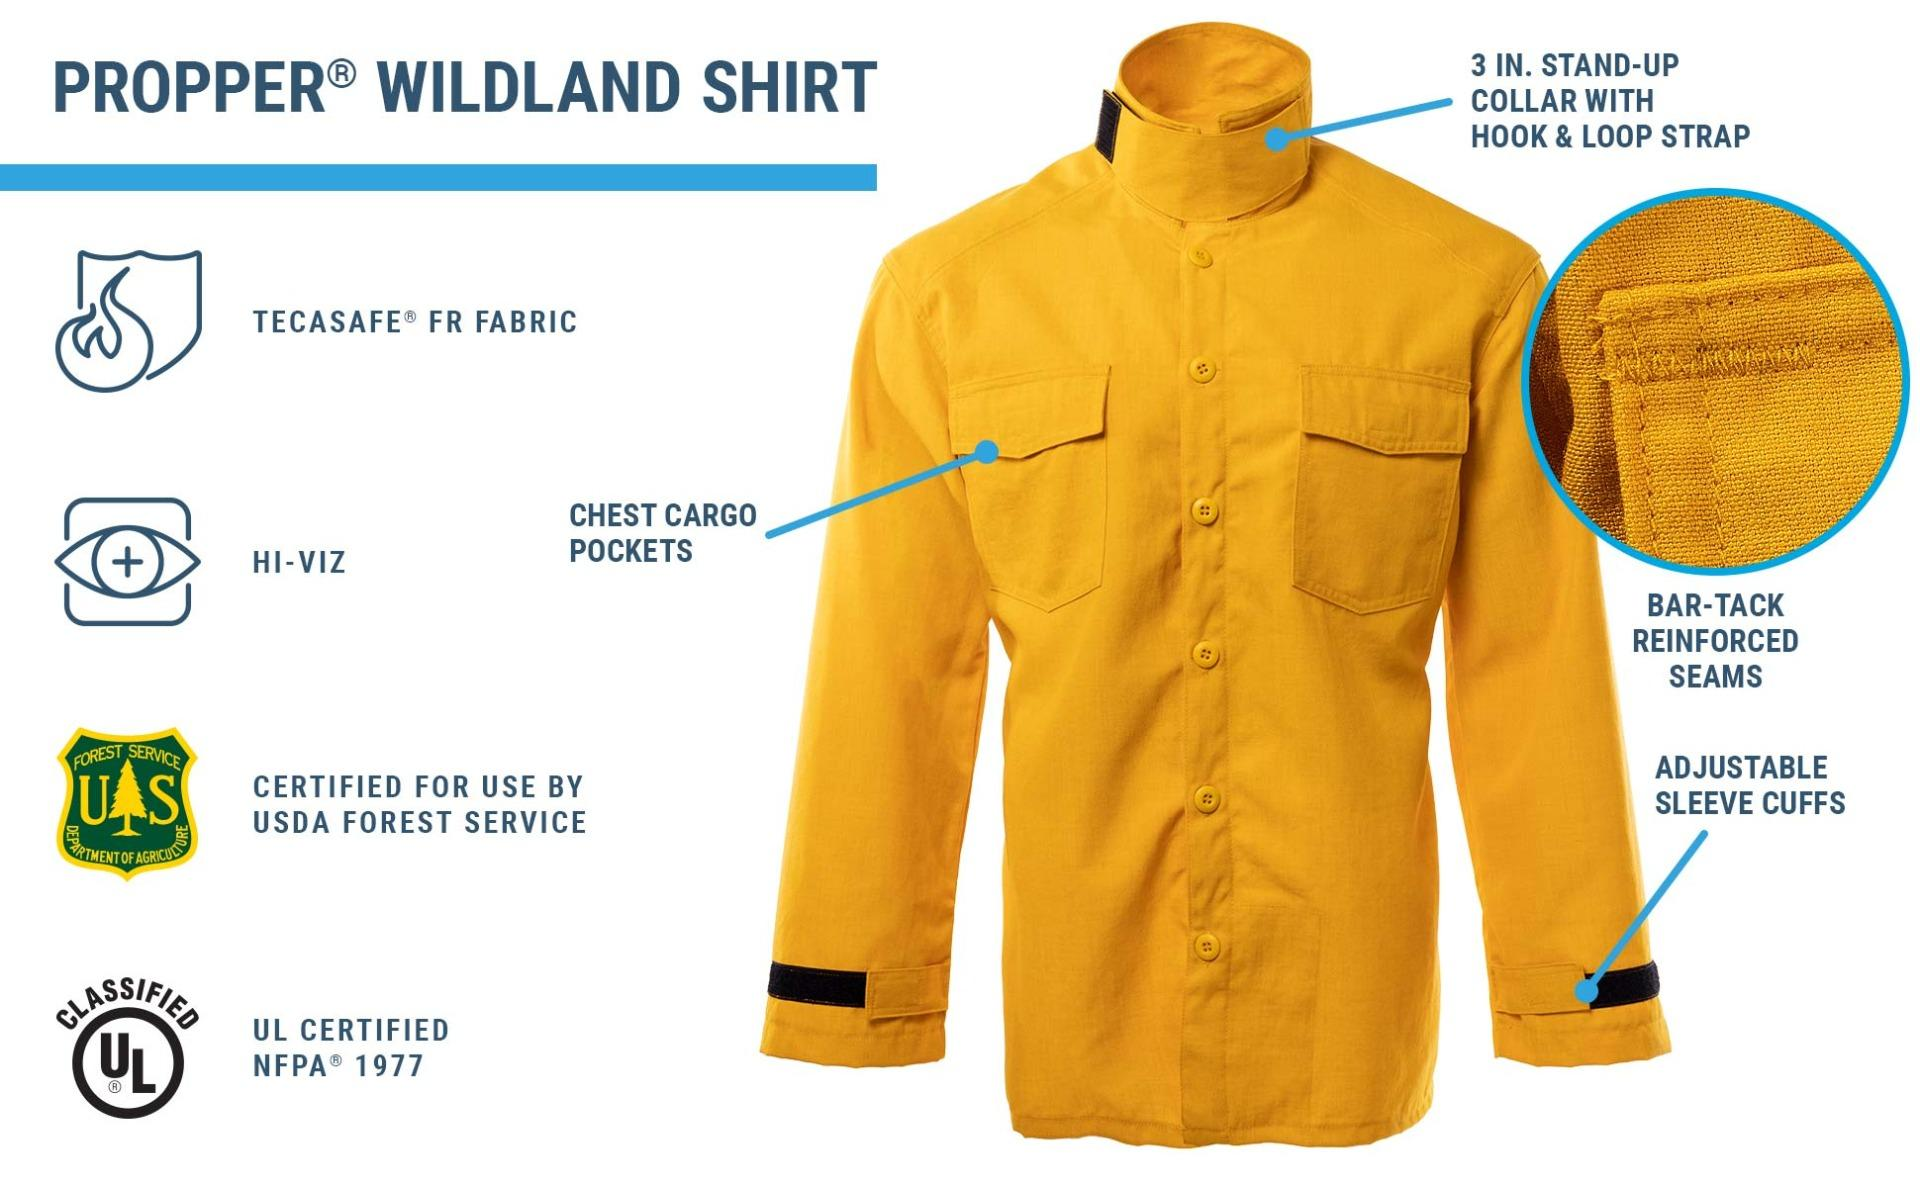 Yellow fire resistant Wildland shirt with chest cargo pockets and bar tack reinforcements